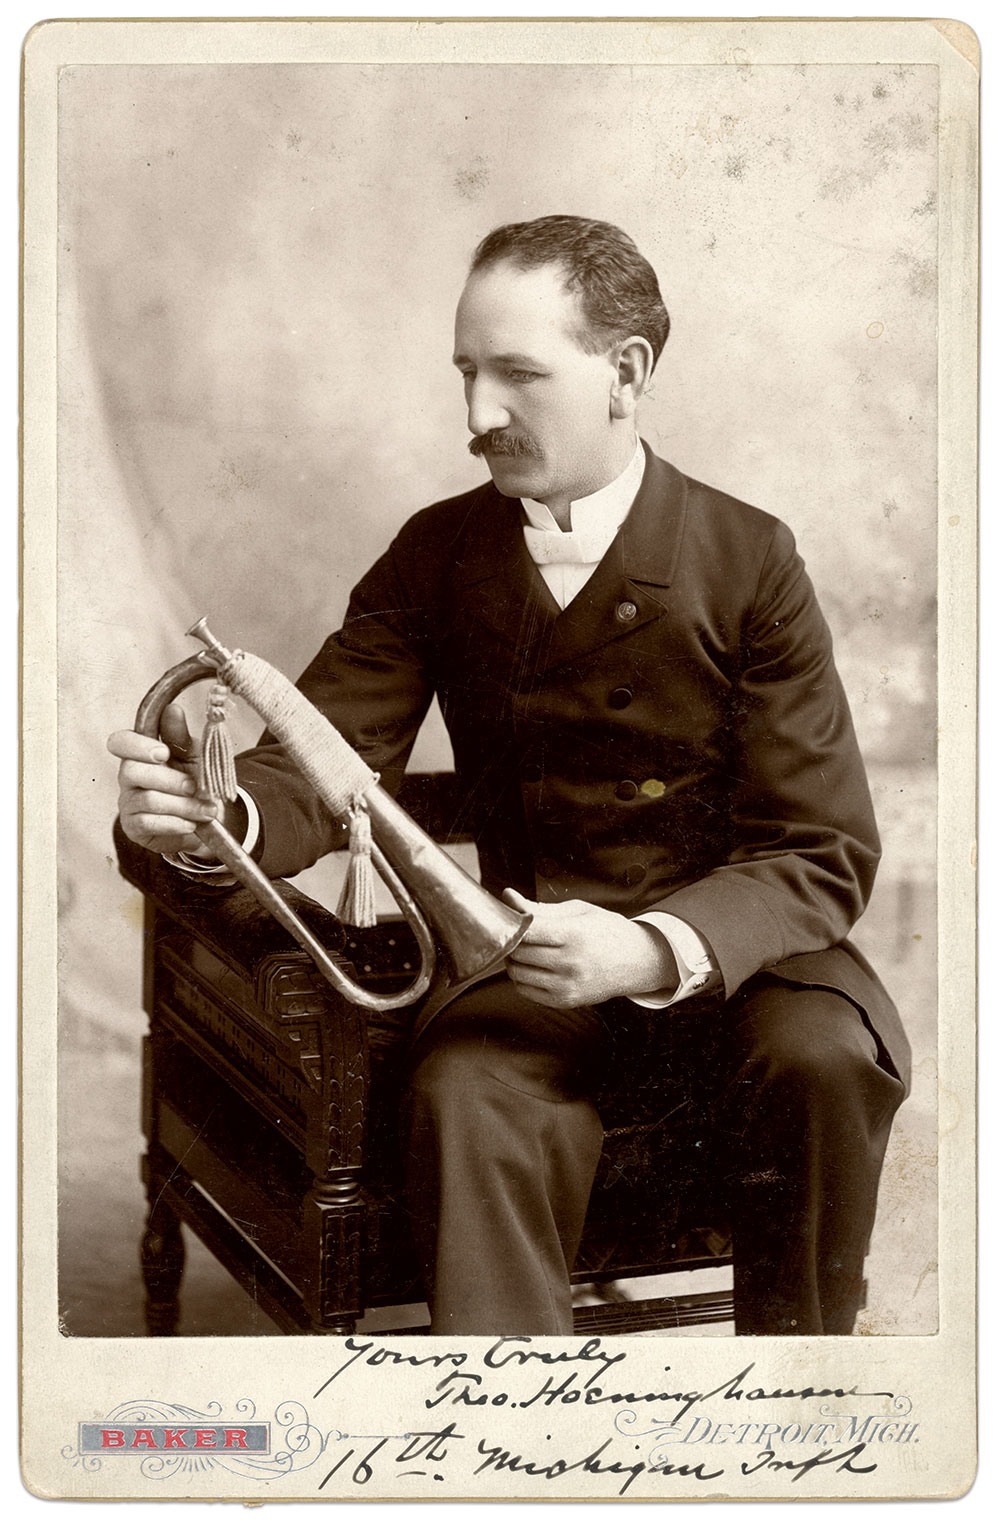 Cabinet card by C. Russell Baker of Detroit, Mich. Chris Nelson Collection.